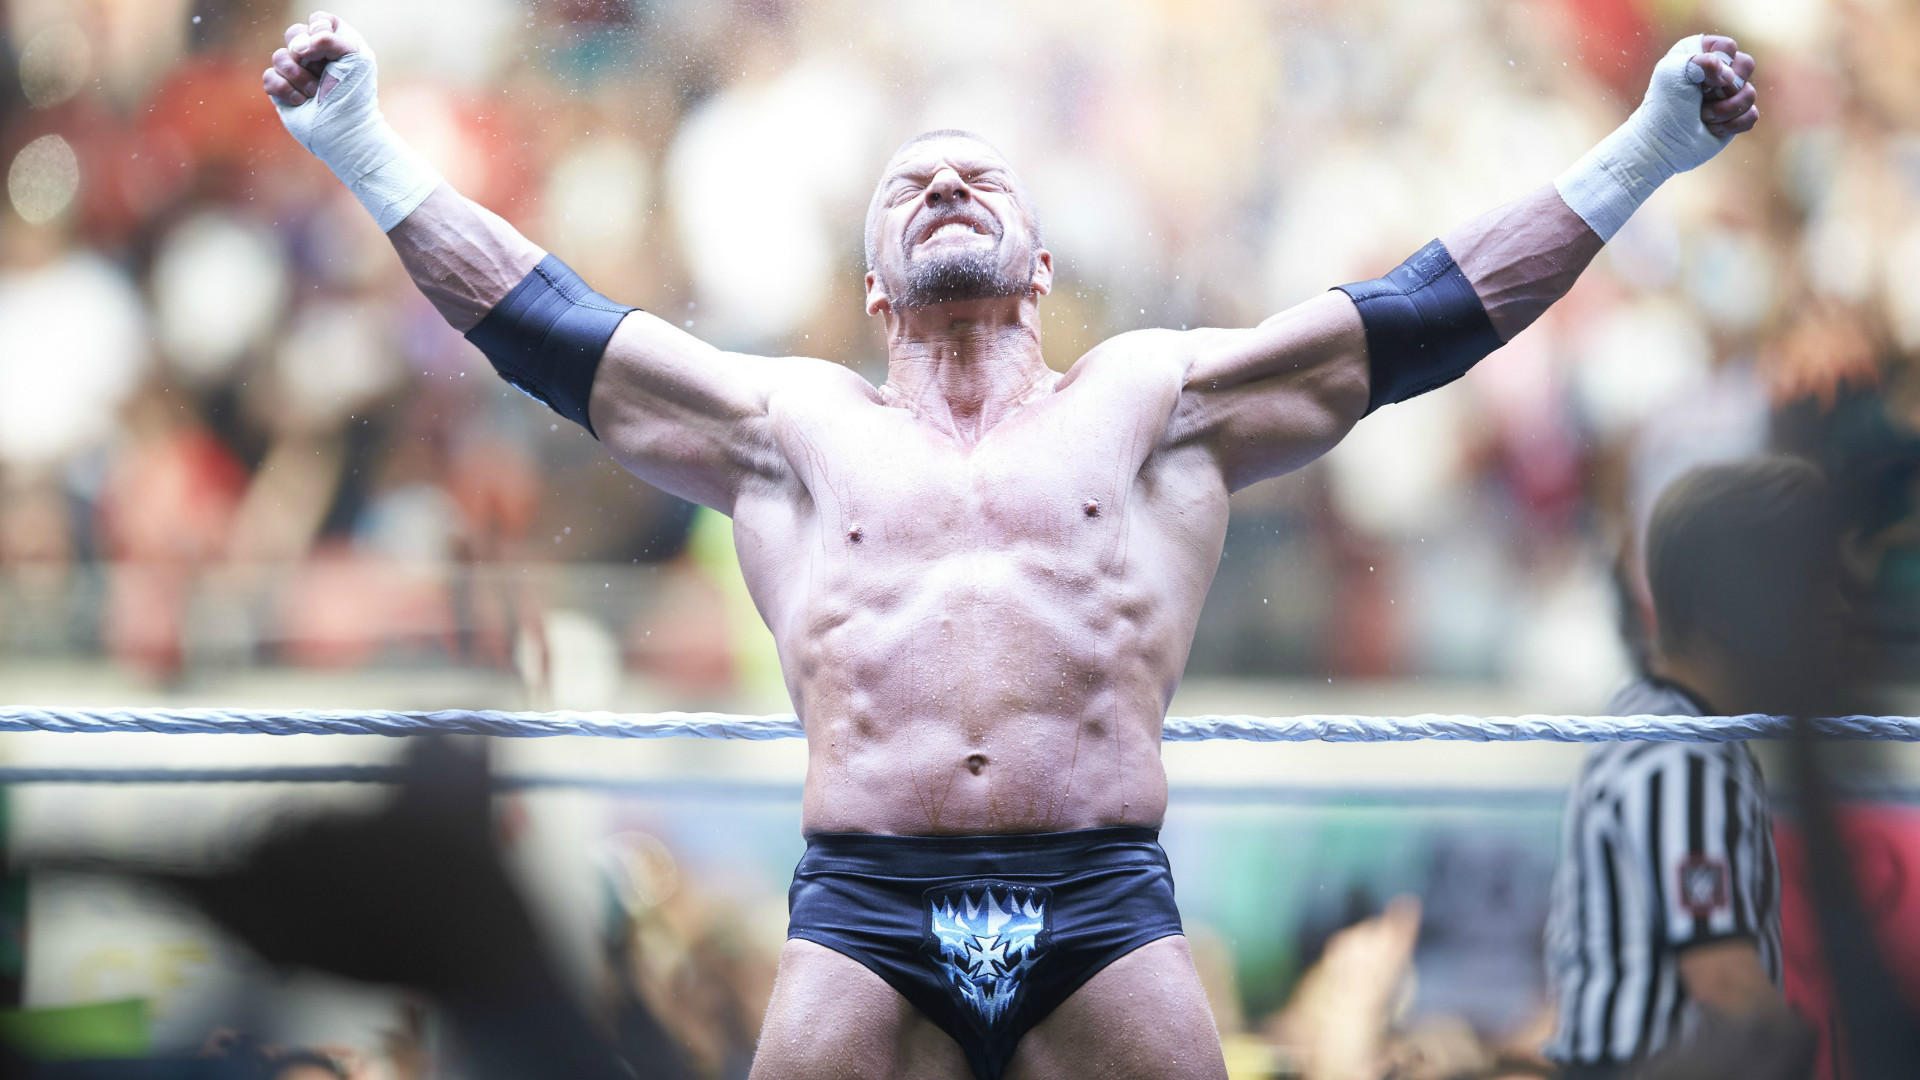 Triple H WWE wrestling star